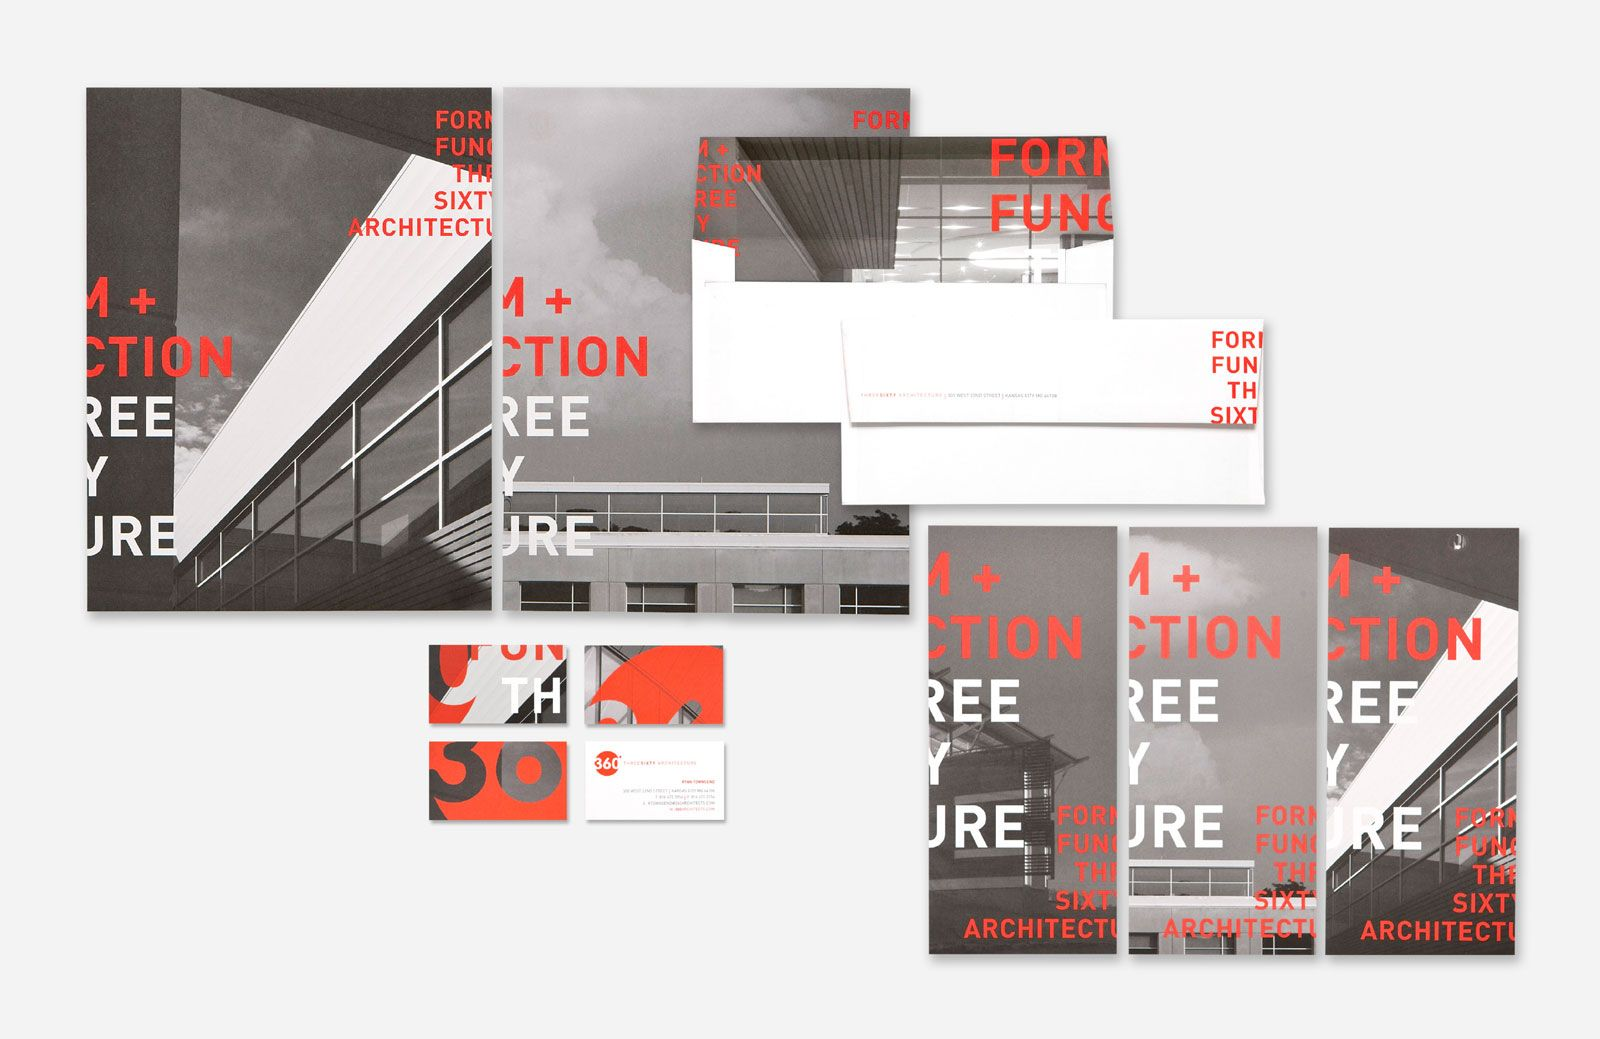 360 Architecture Branding By Kansas City Based Design Firm Design Ranch